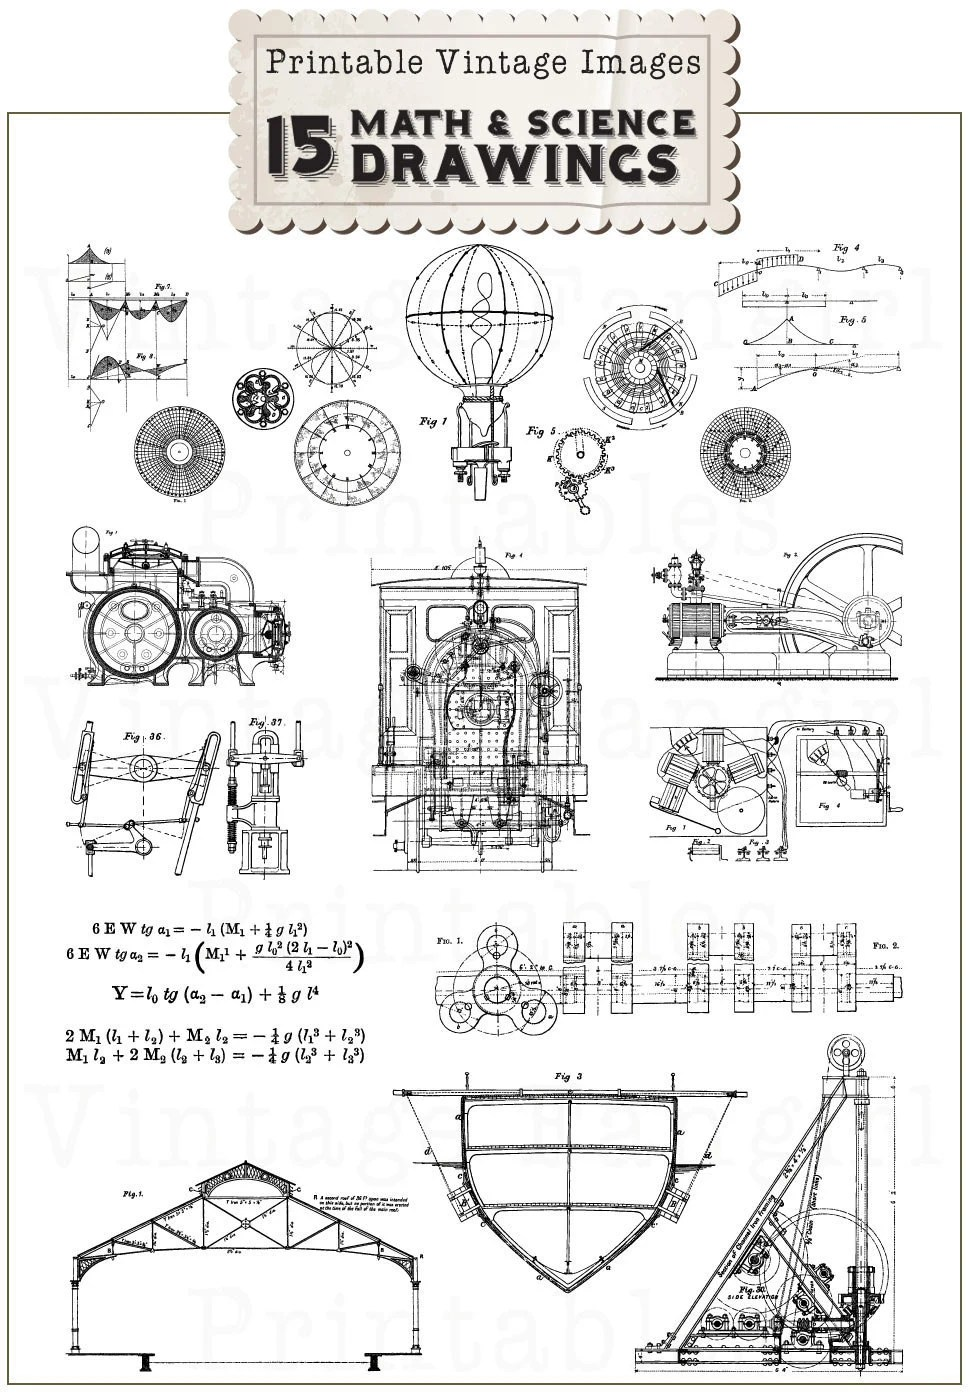 NEW 15 Vintage Science & Math Drawings Clip Art Collection